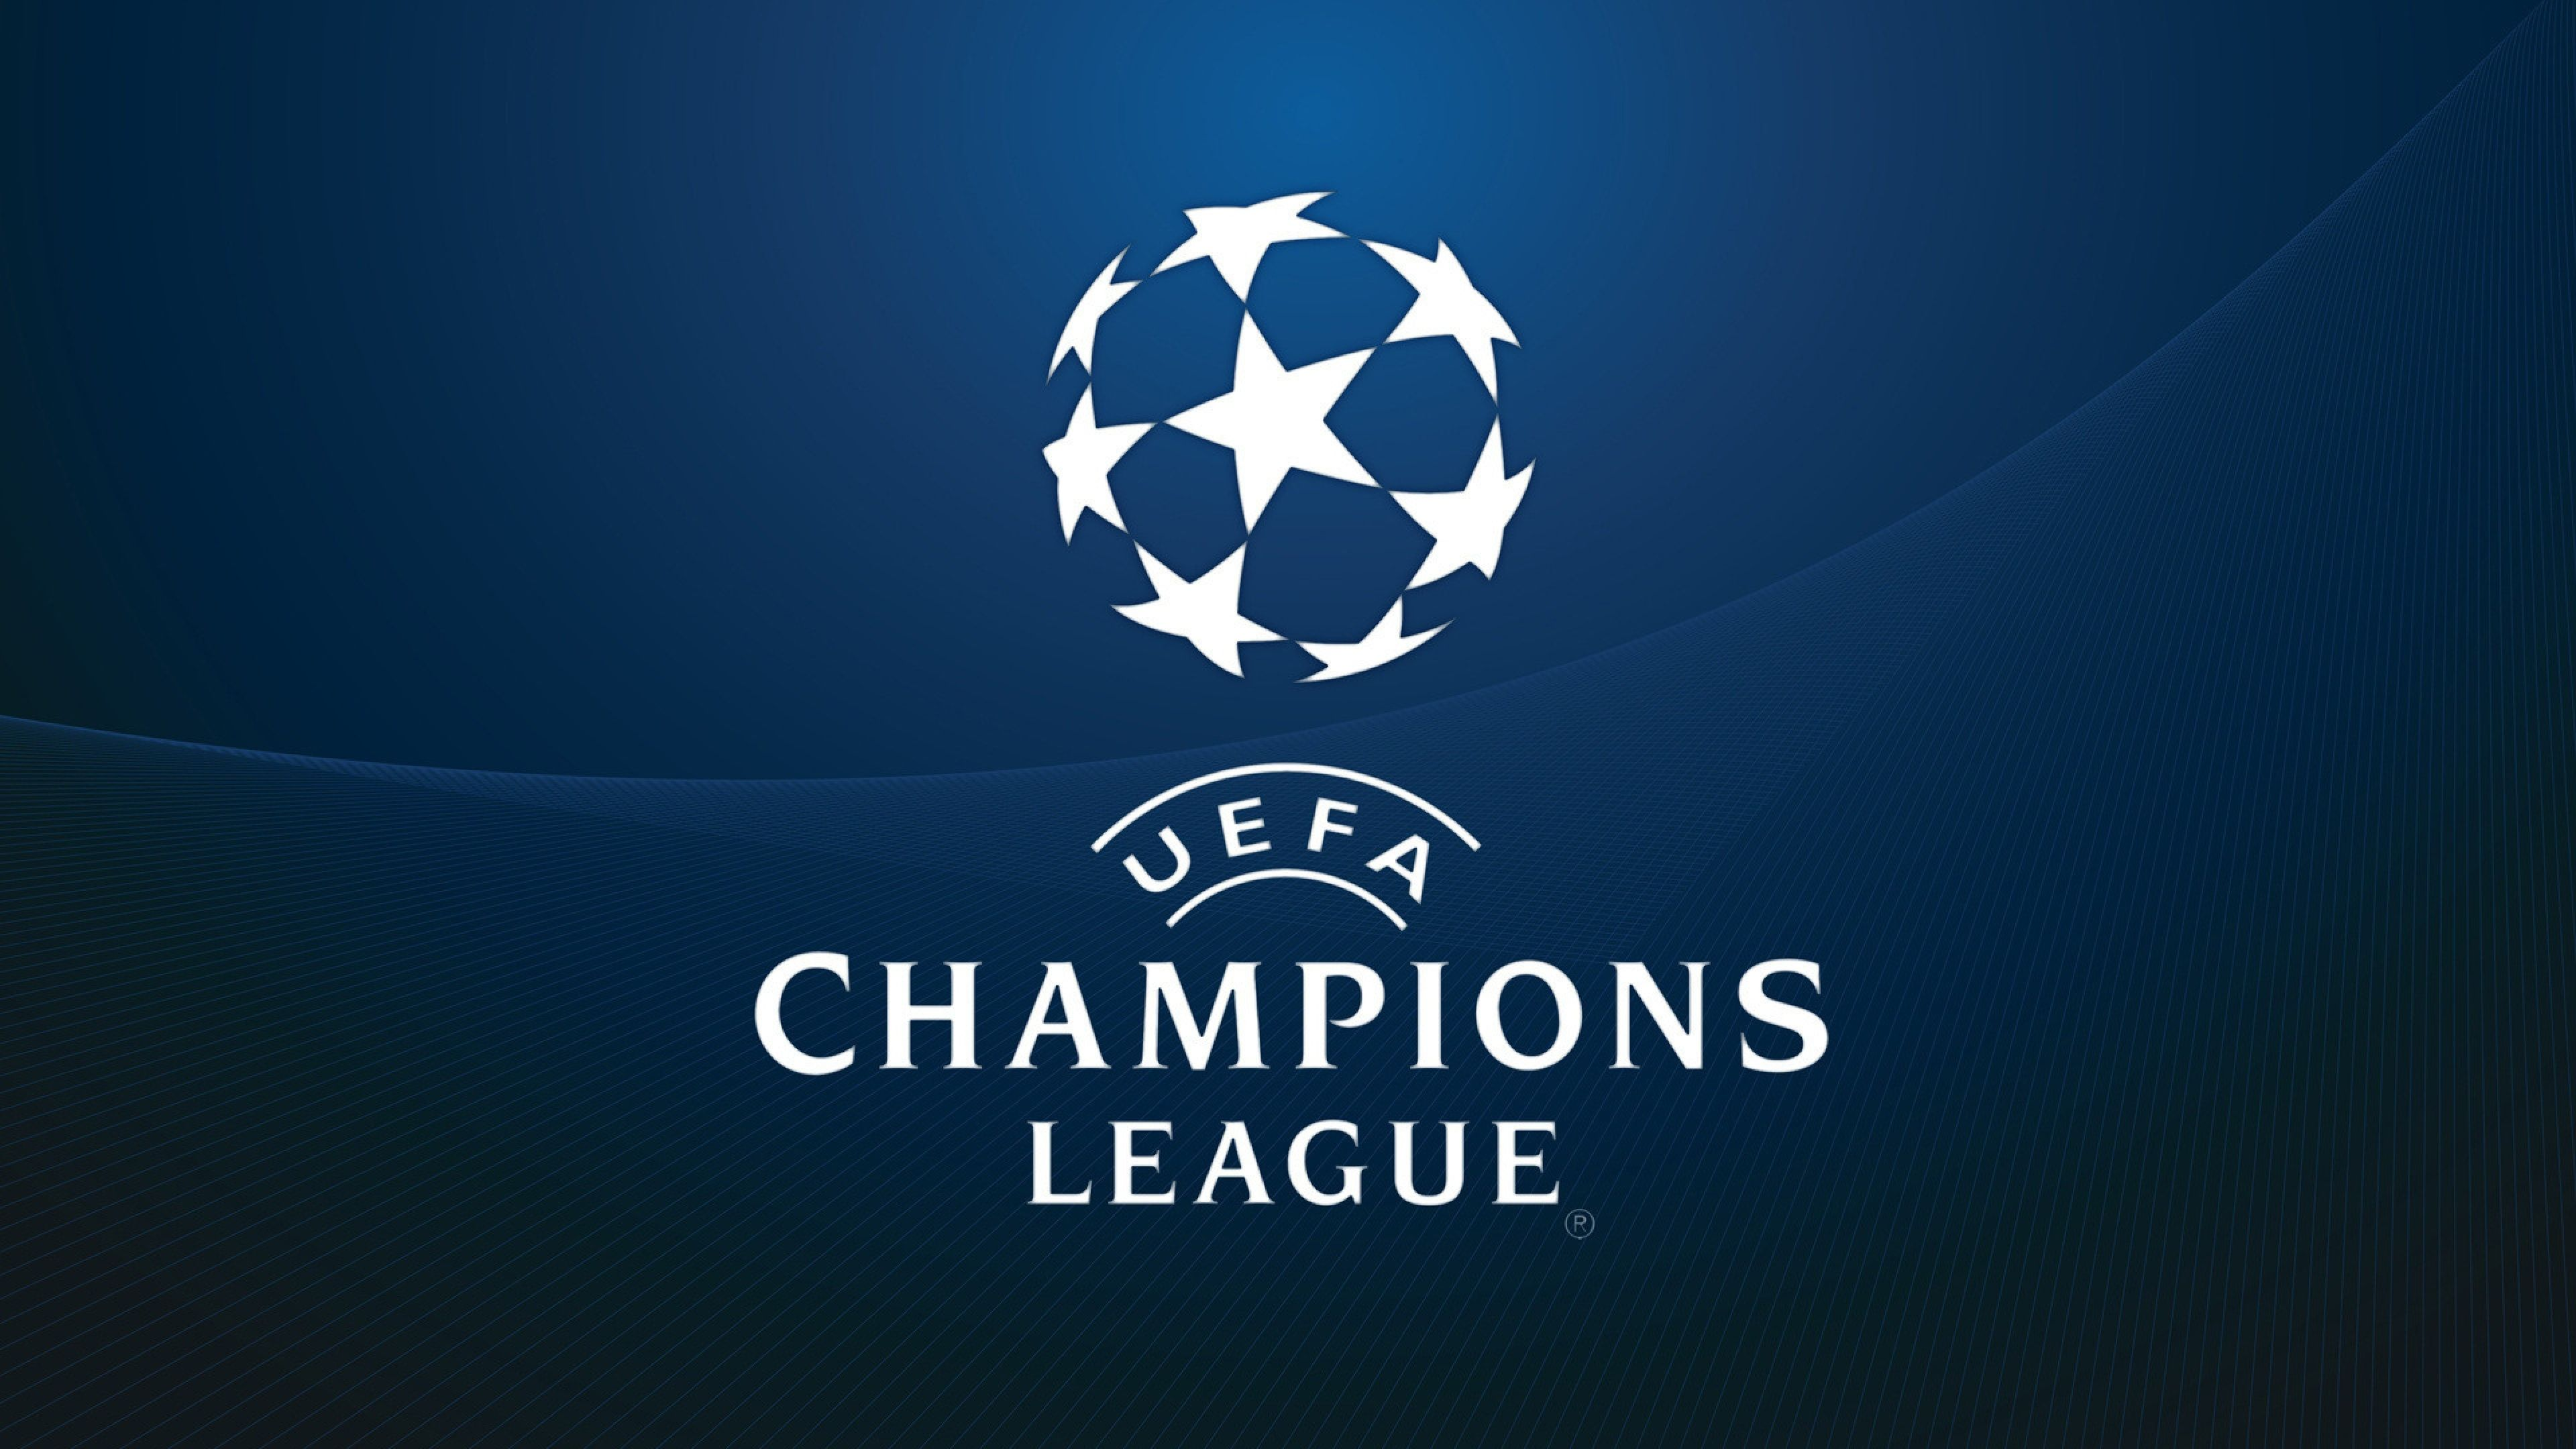 UEFA Champions League Official Wallpaper with Dark Blue